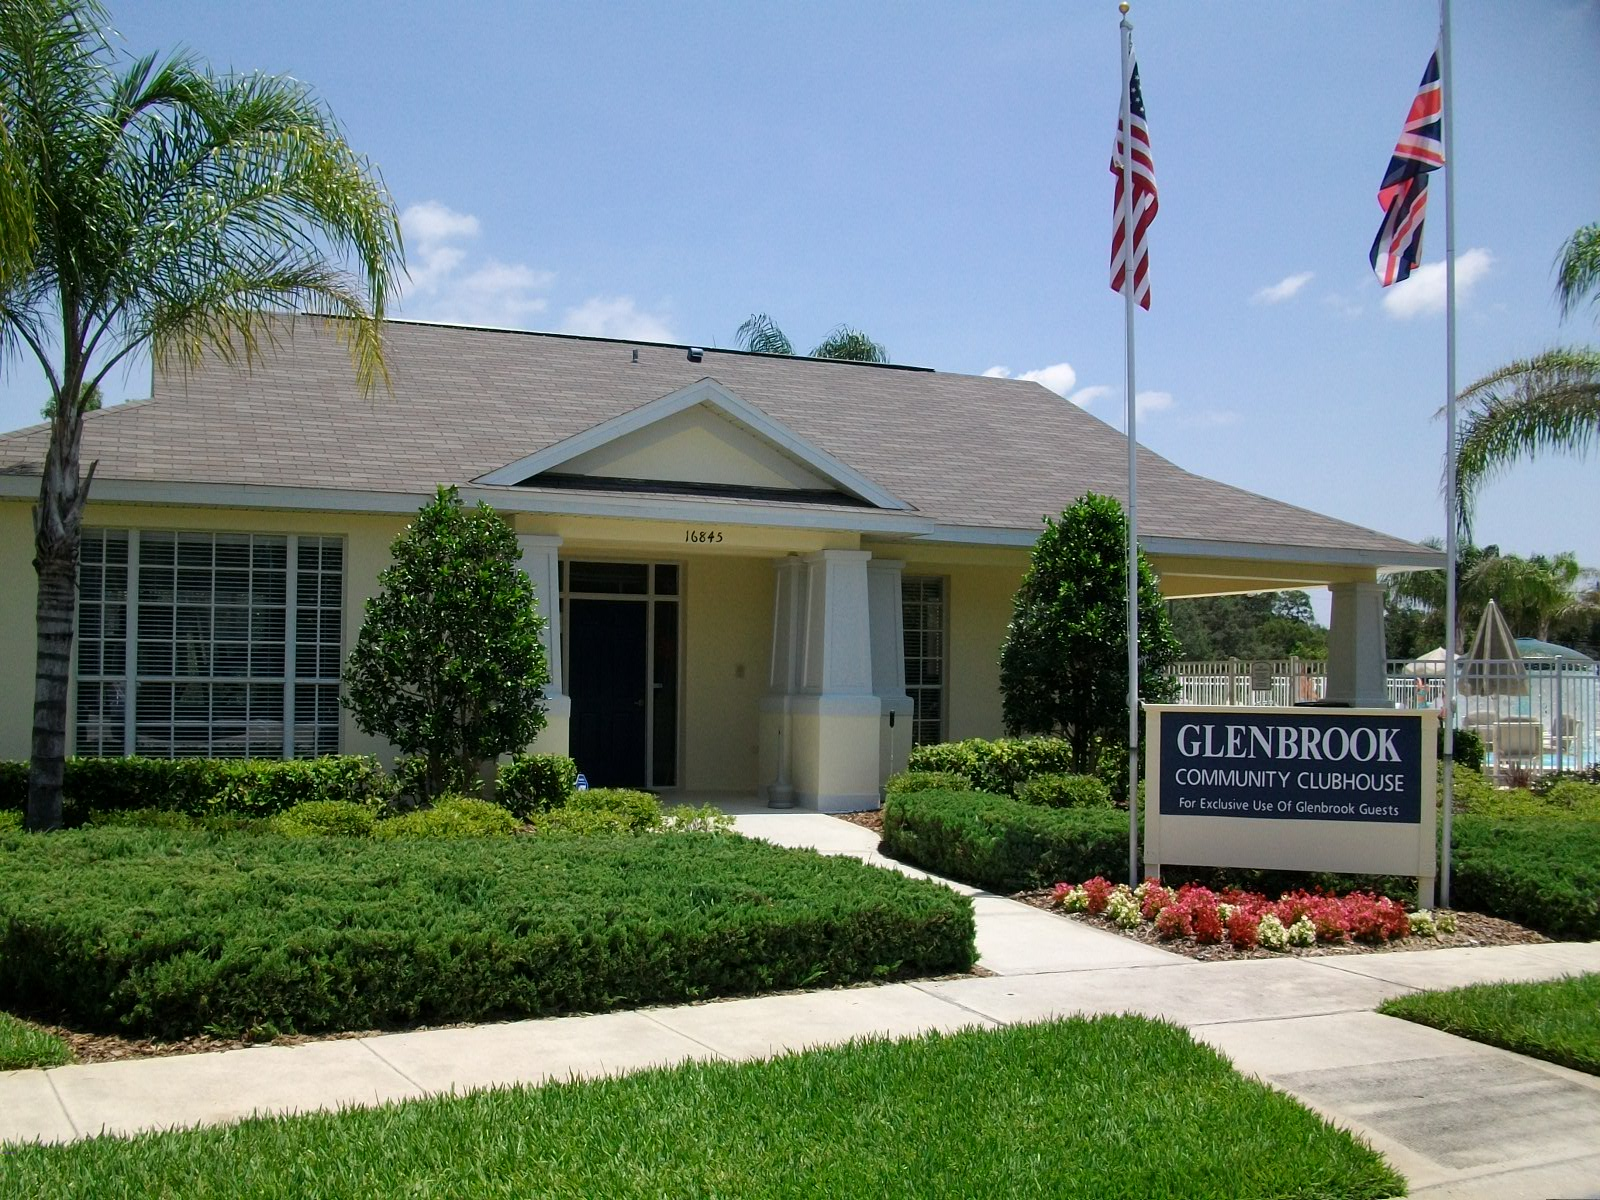 Glenbrook Community Clubhouse